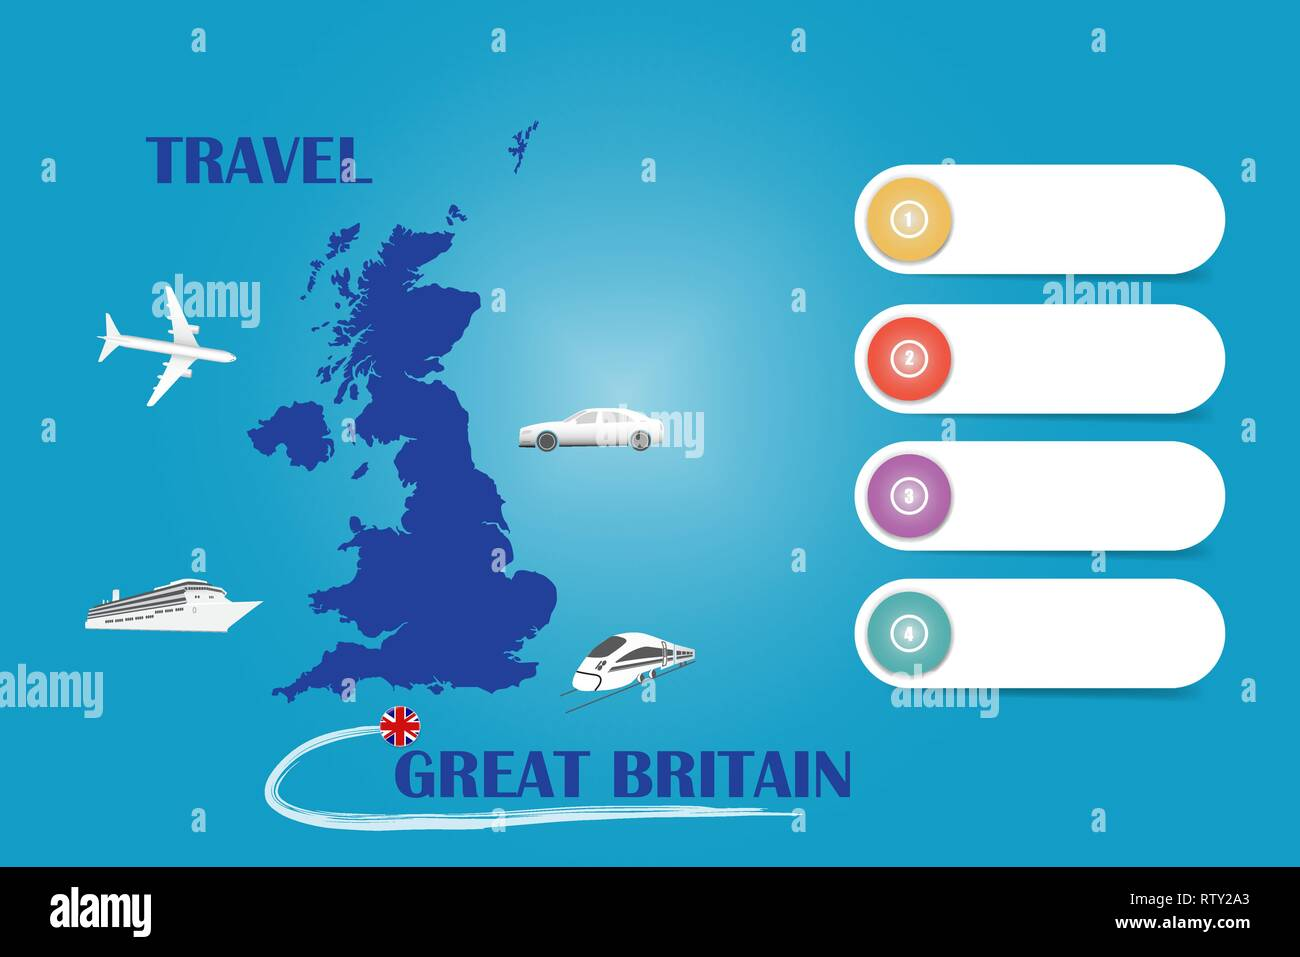 Map Of Uk Template.Travel Great Britain Template Vector For Travel Agencies Etc Vector